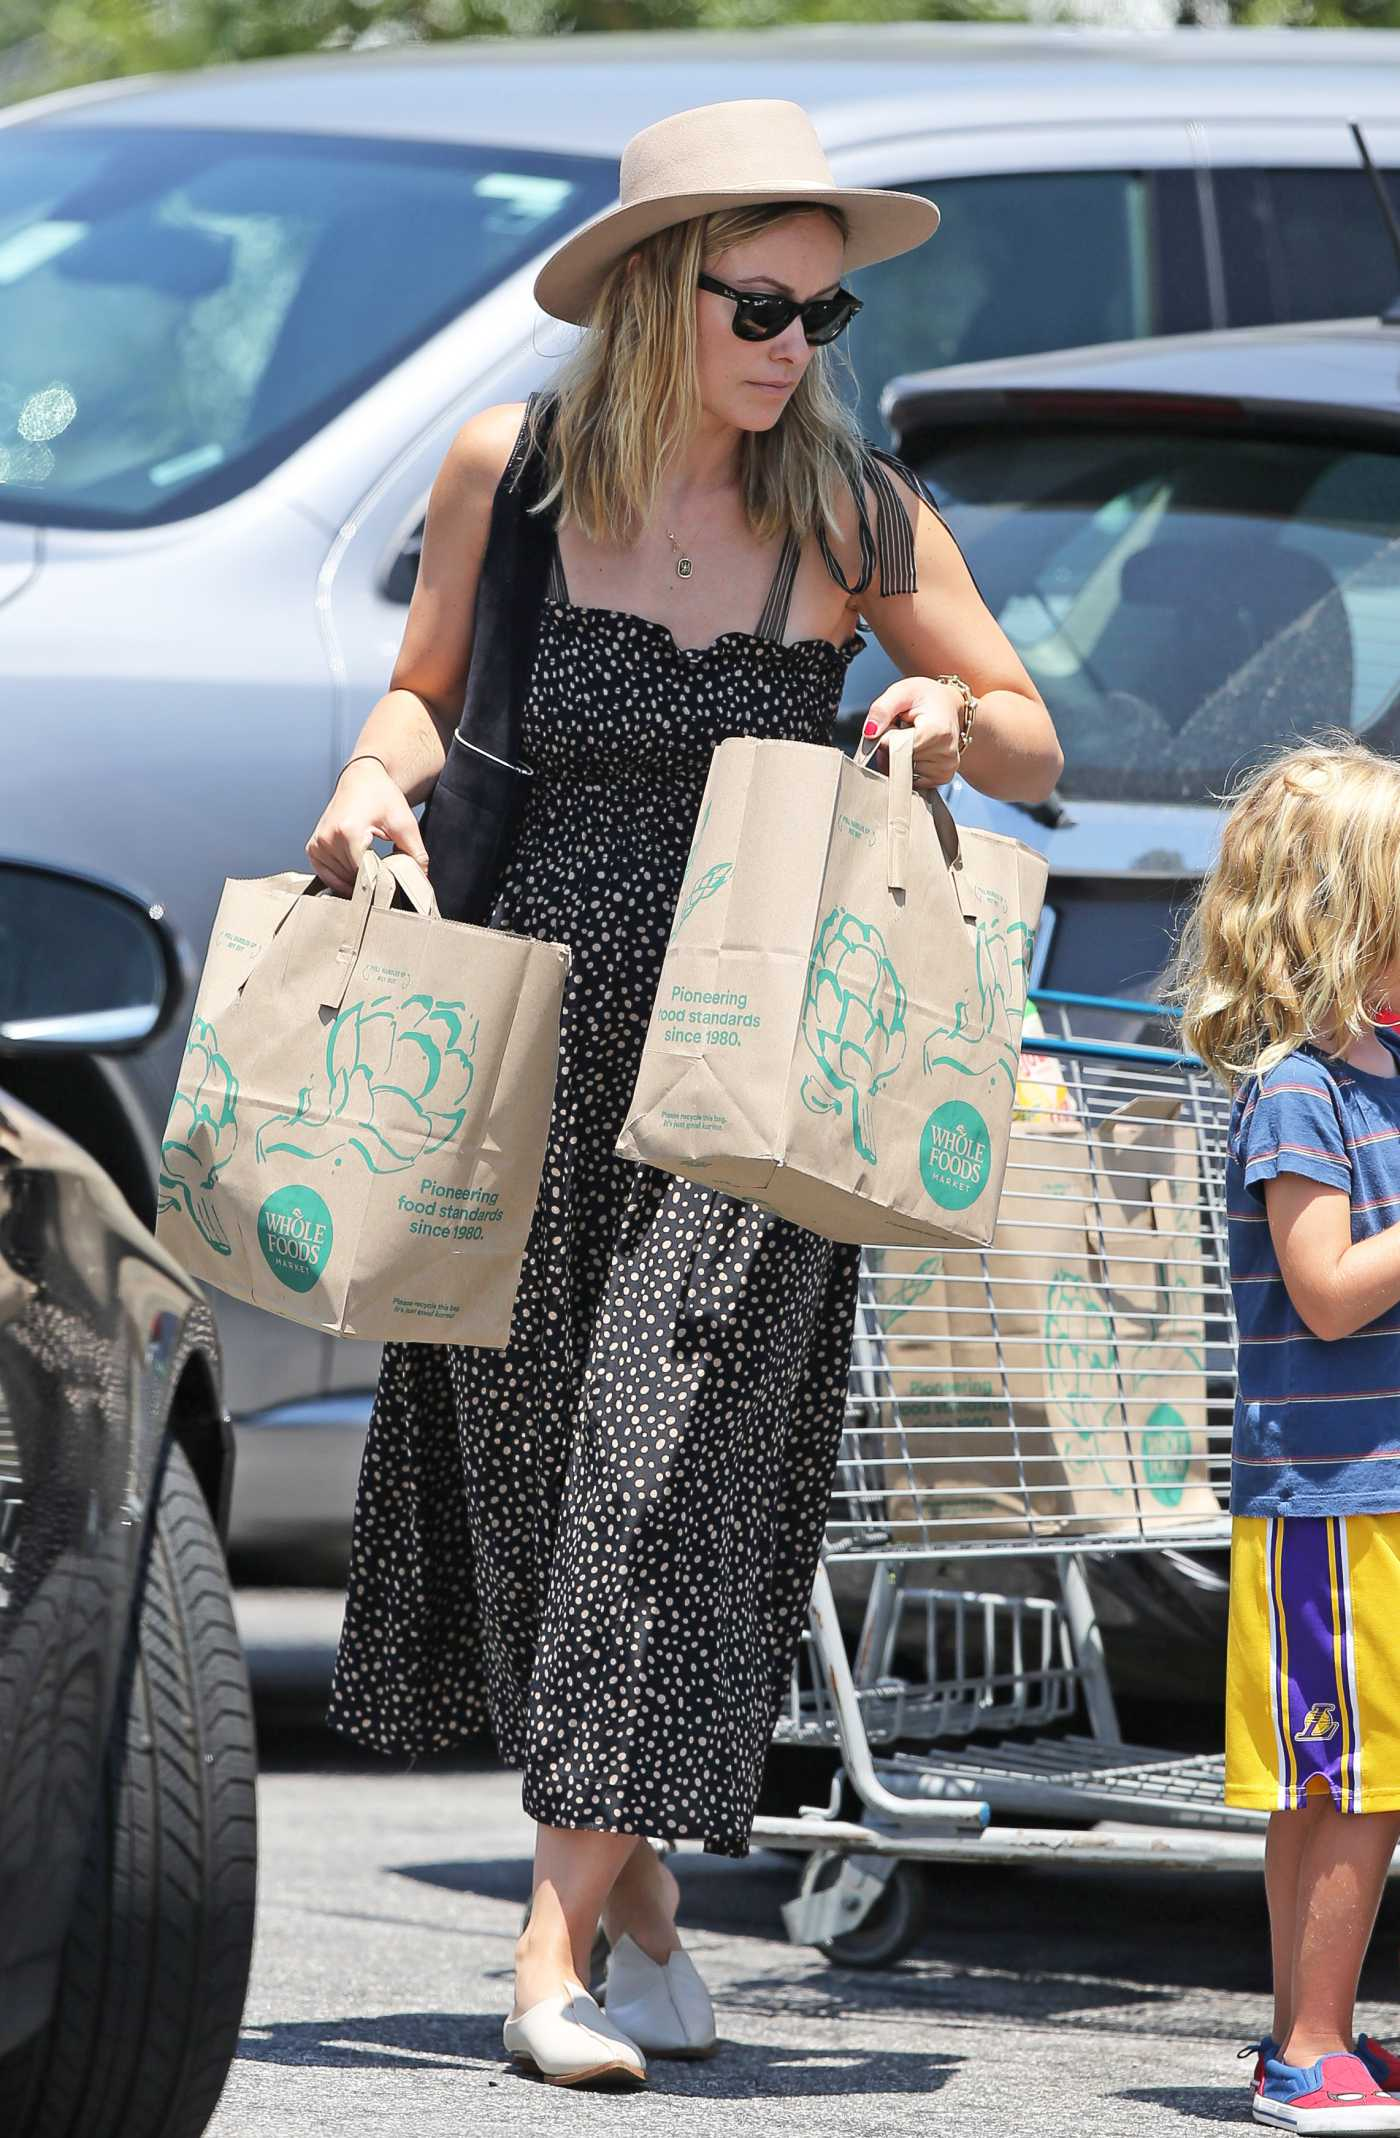 Olivia Wilde in a Beige Hat Shops at Whole Foods in Los Angeles 07/17/2019